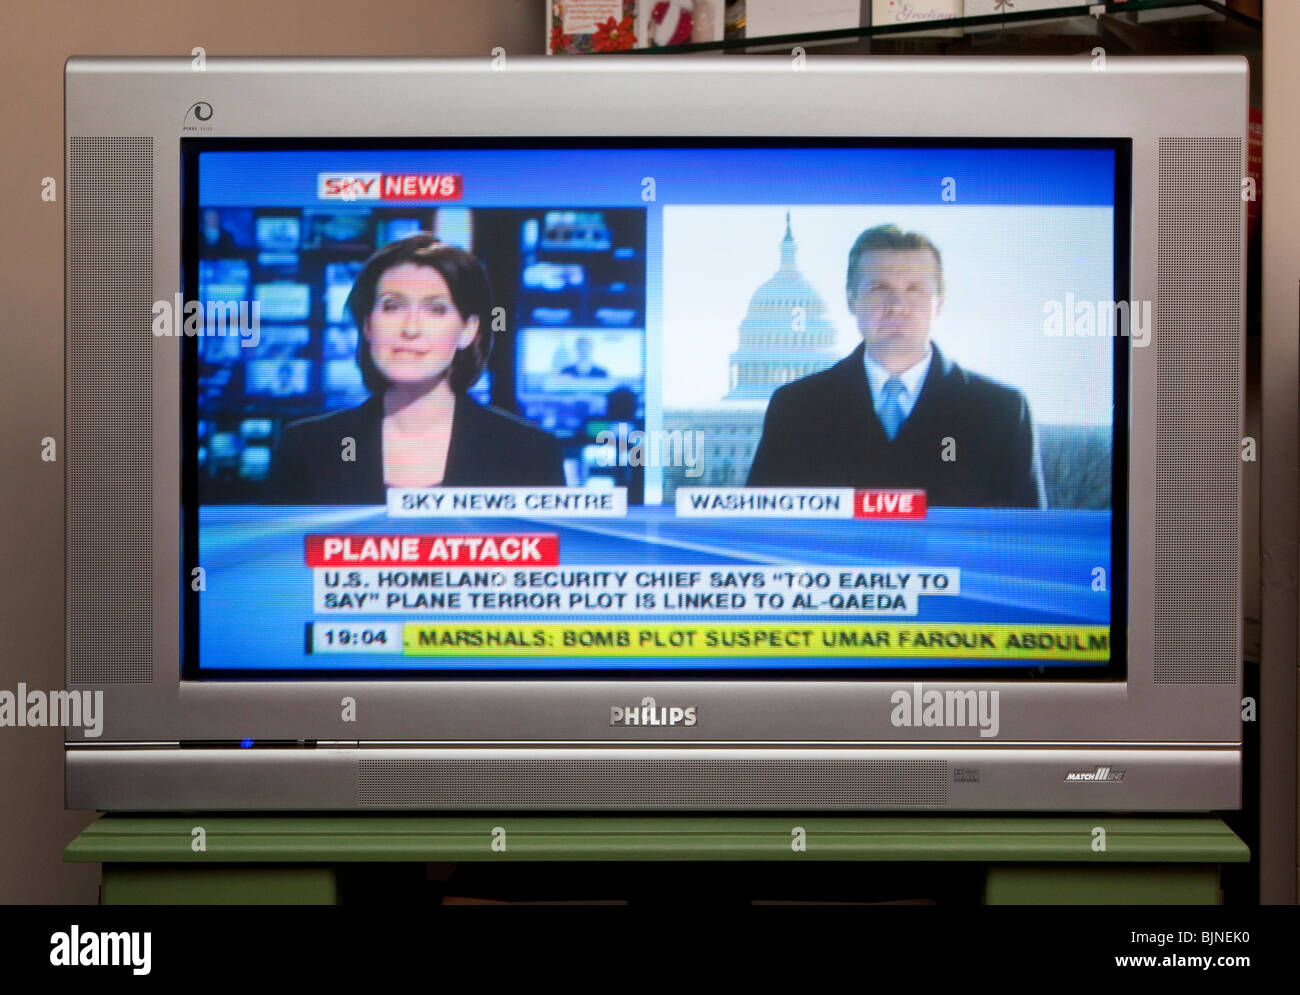 Tv Screen Showing Sky News Channel Stock Photo 28746676